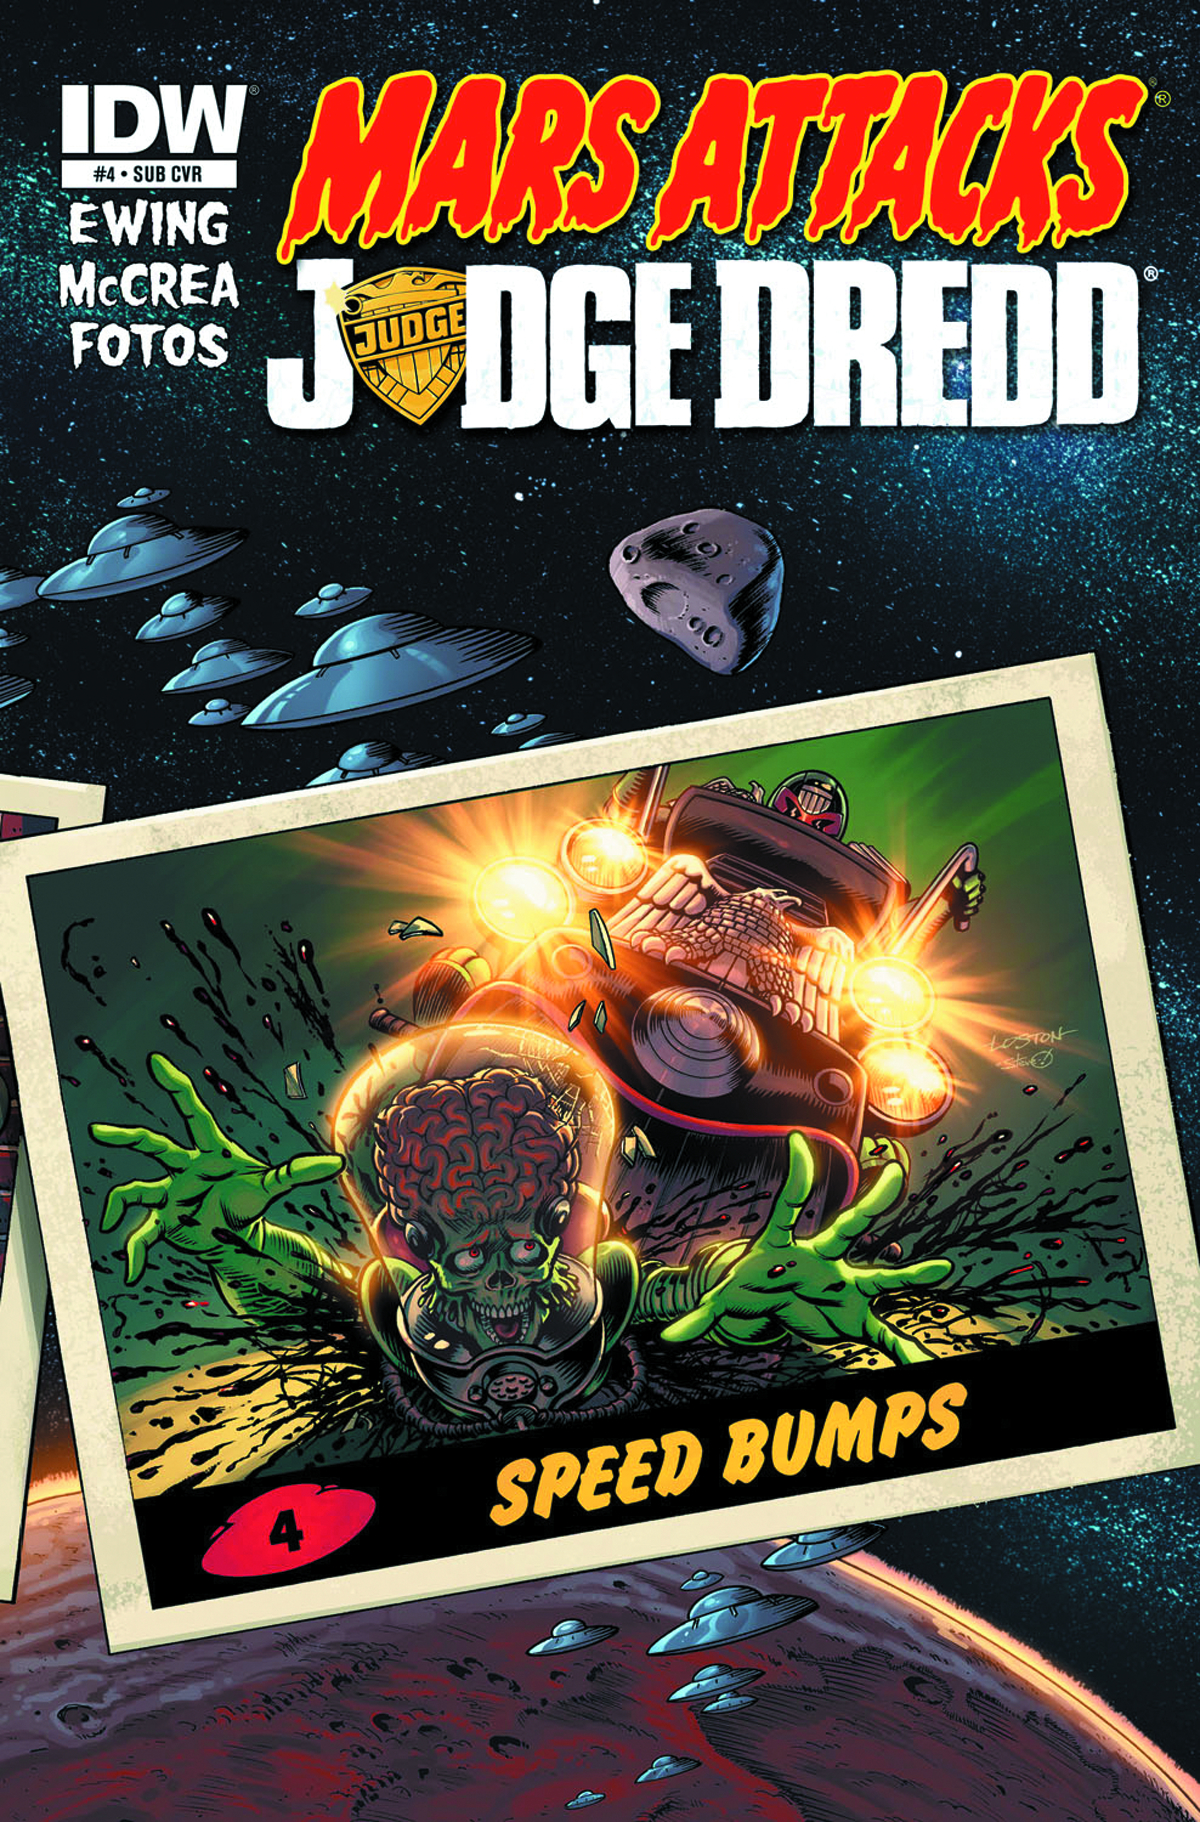 MARS ATTACKS JUDGE DREDD #4